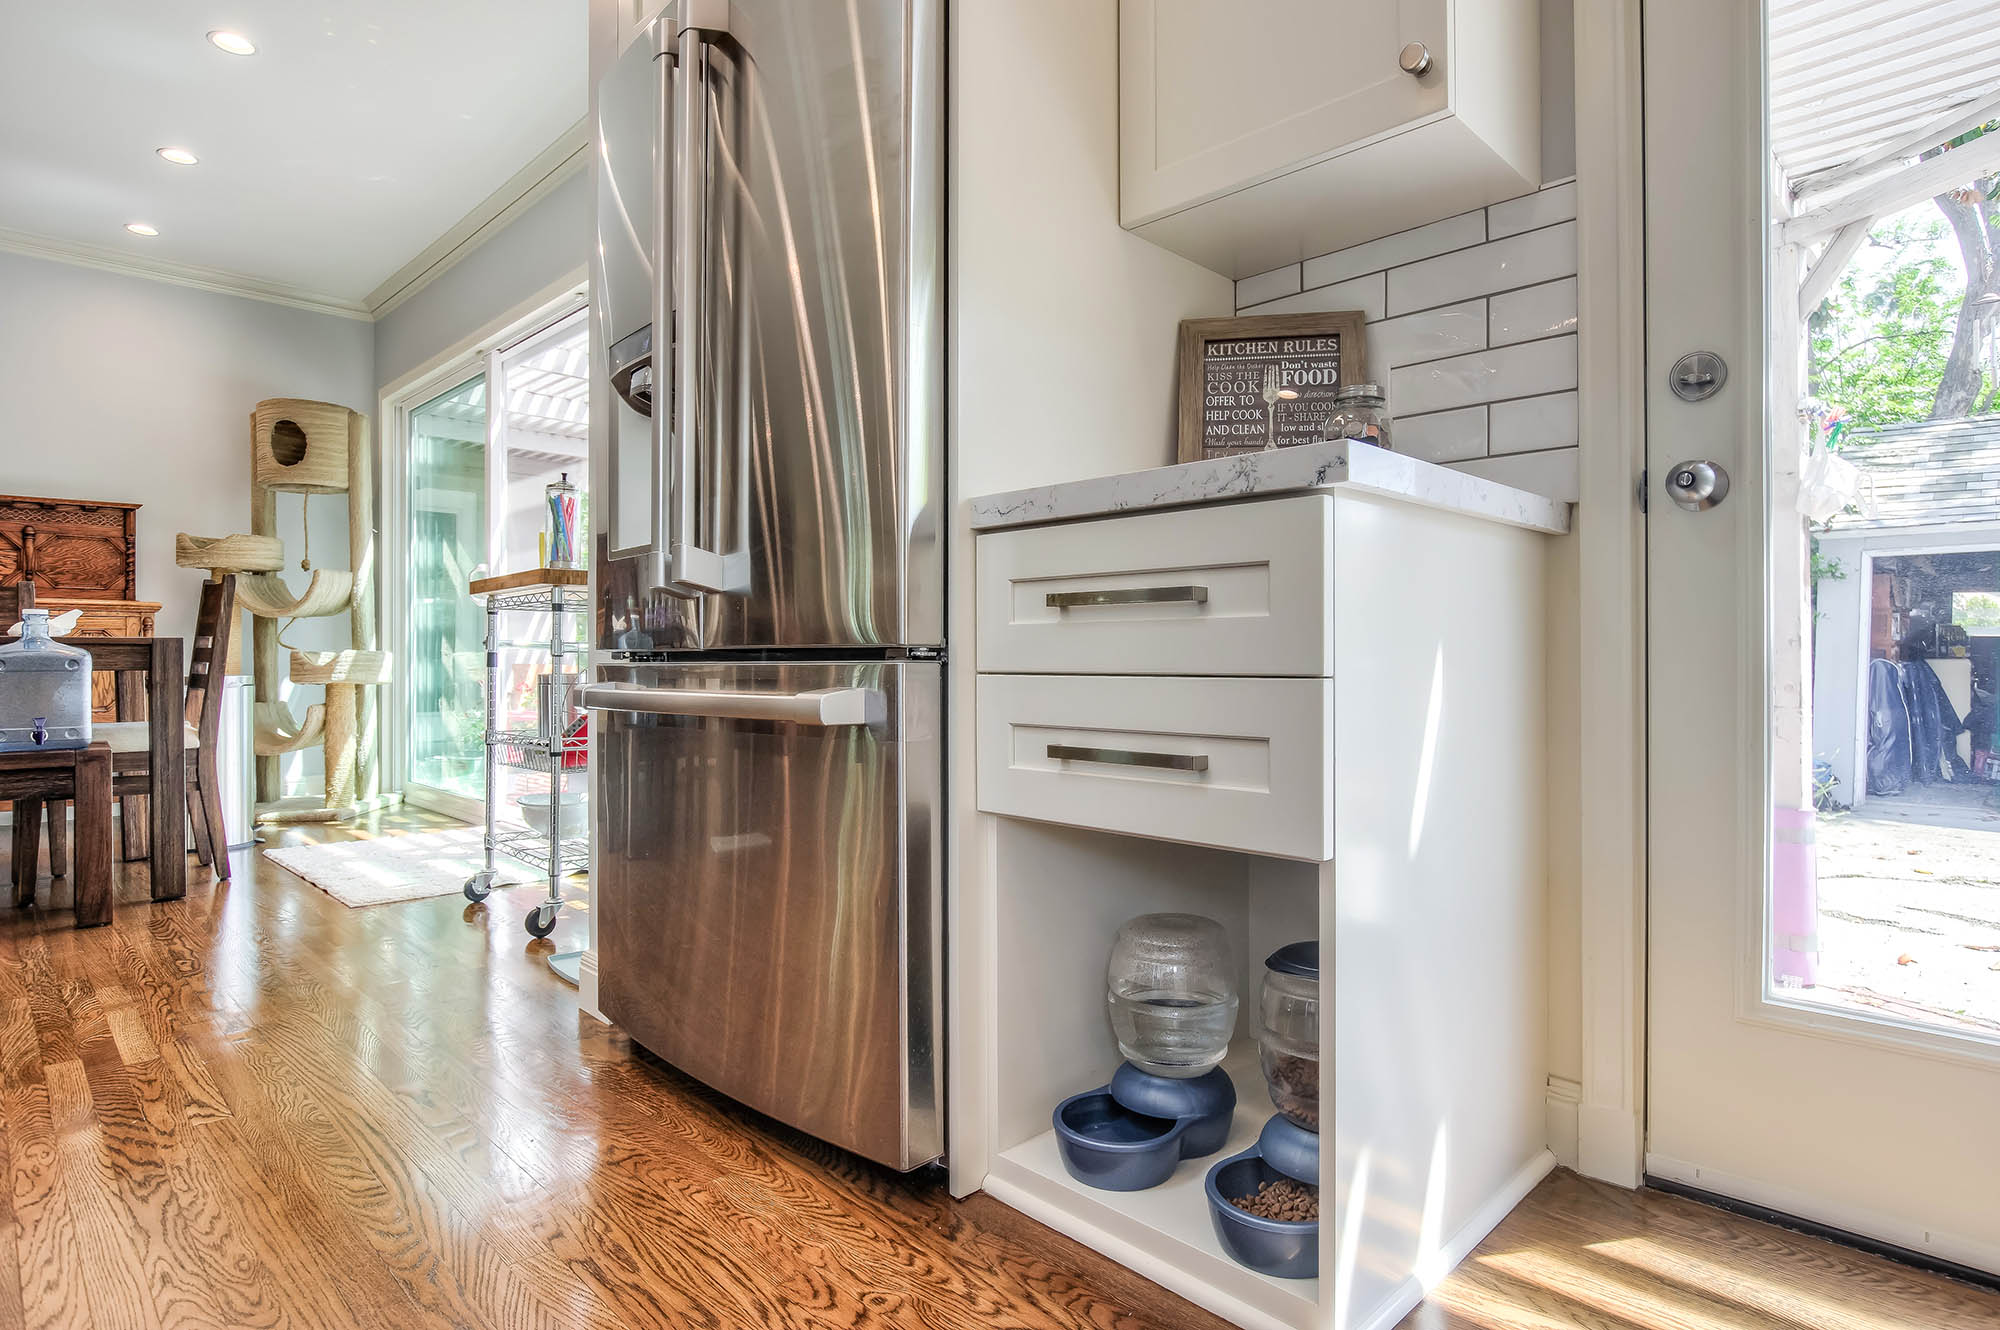 The kitchen was designed with the client's pets in mind to create a covered space for their food and water and extra storage space for their toys, food and treats with their own separate cabinets.